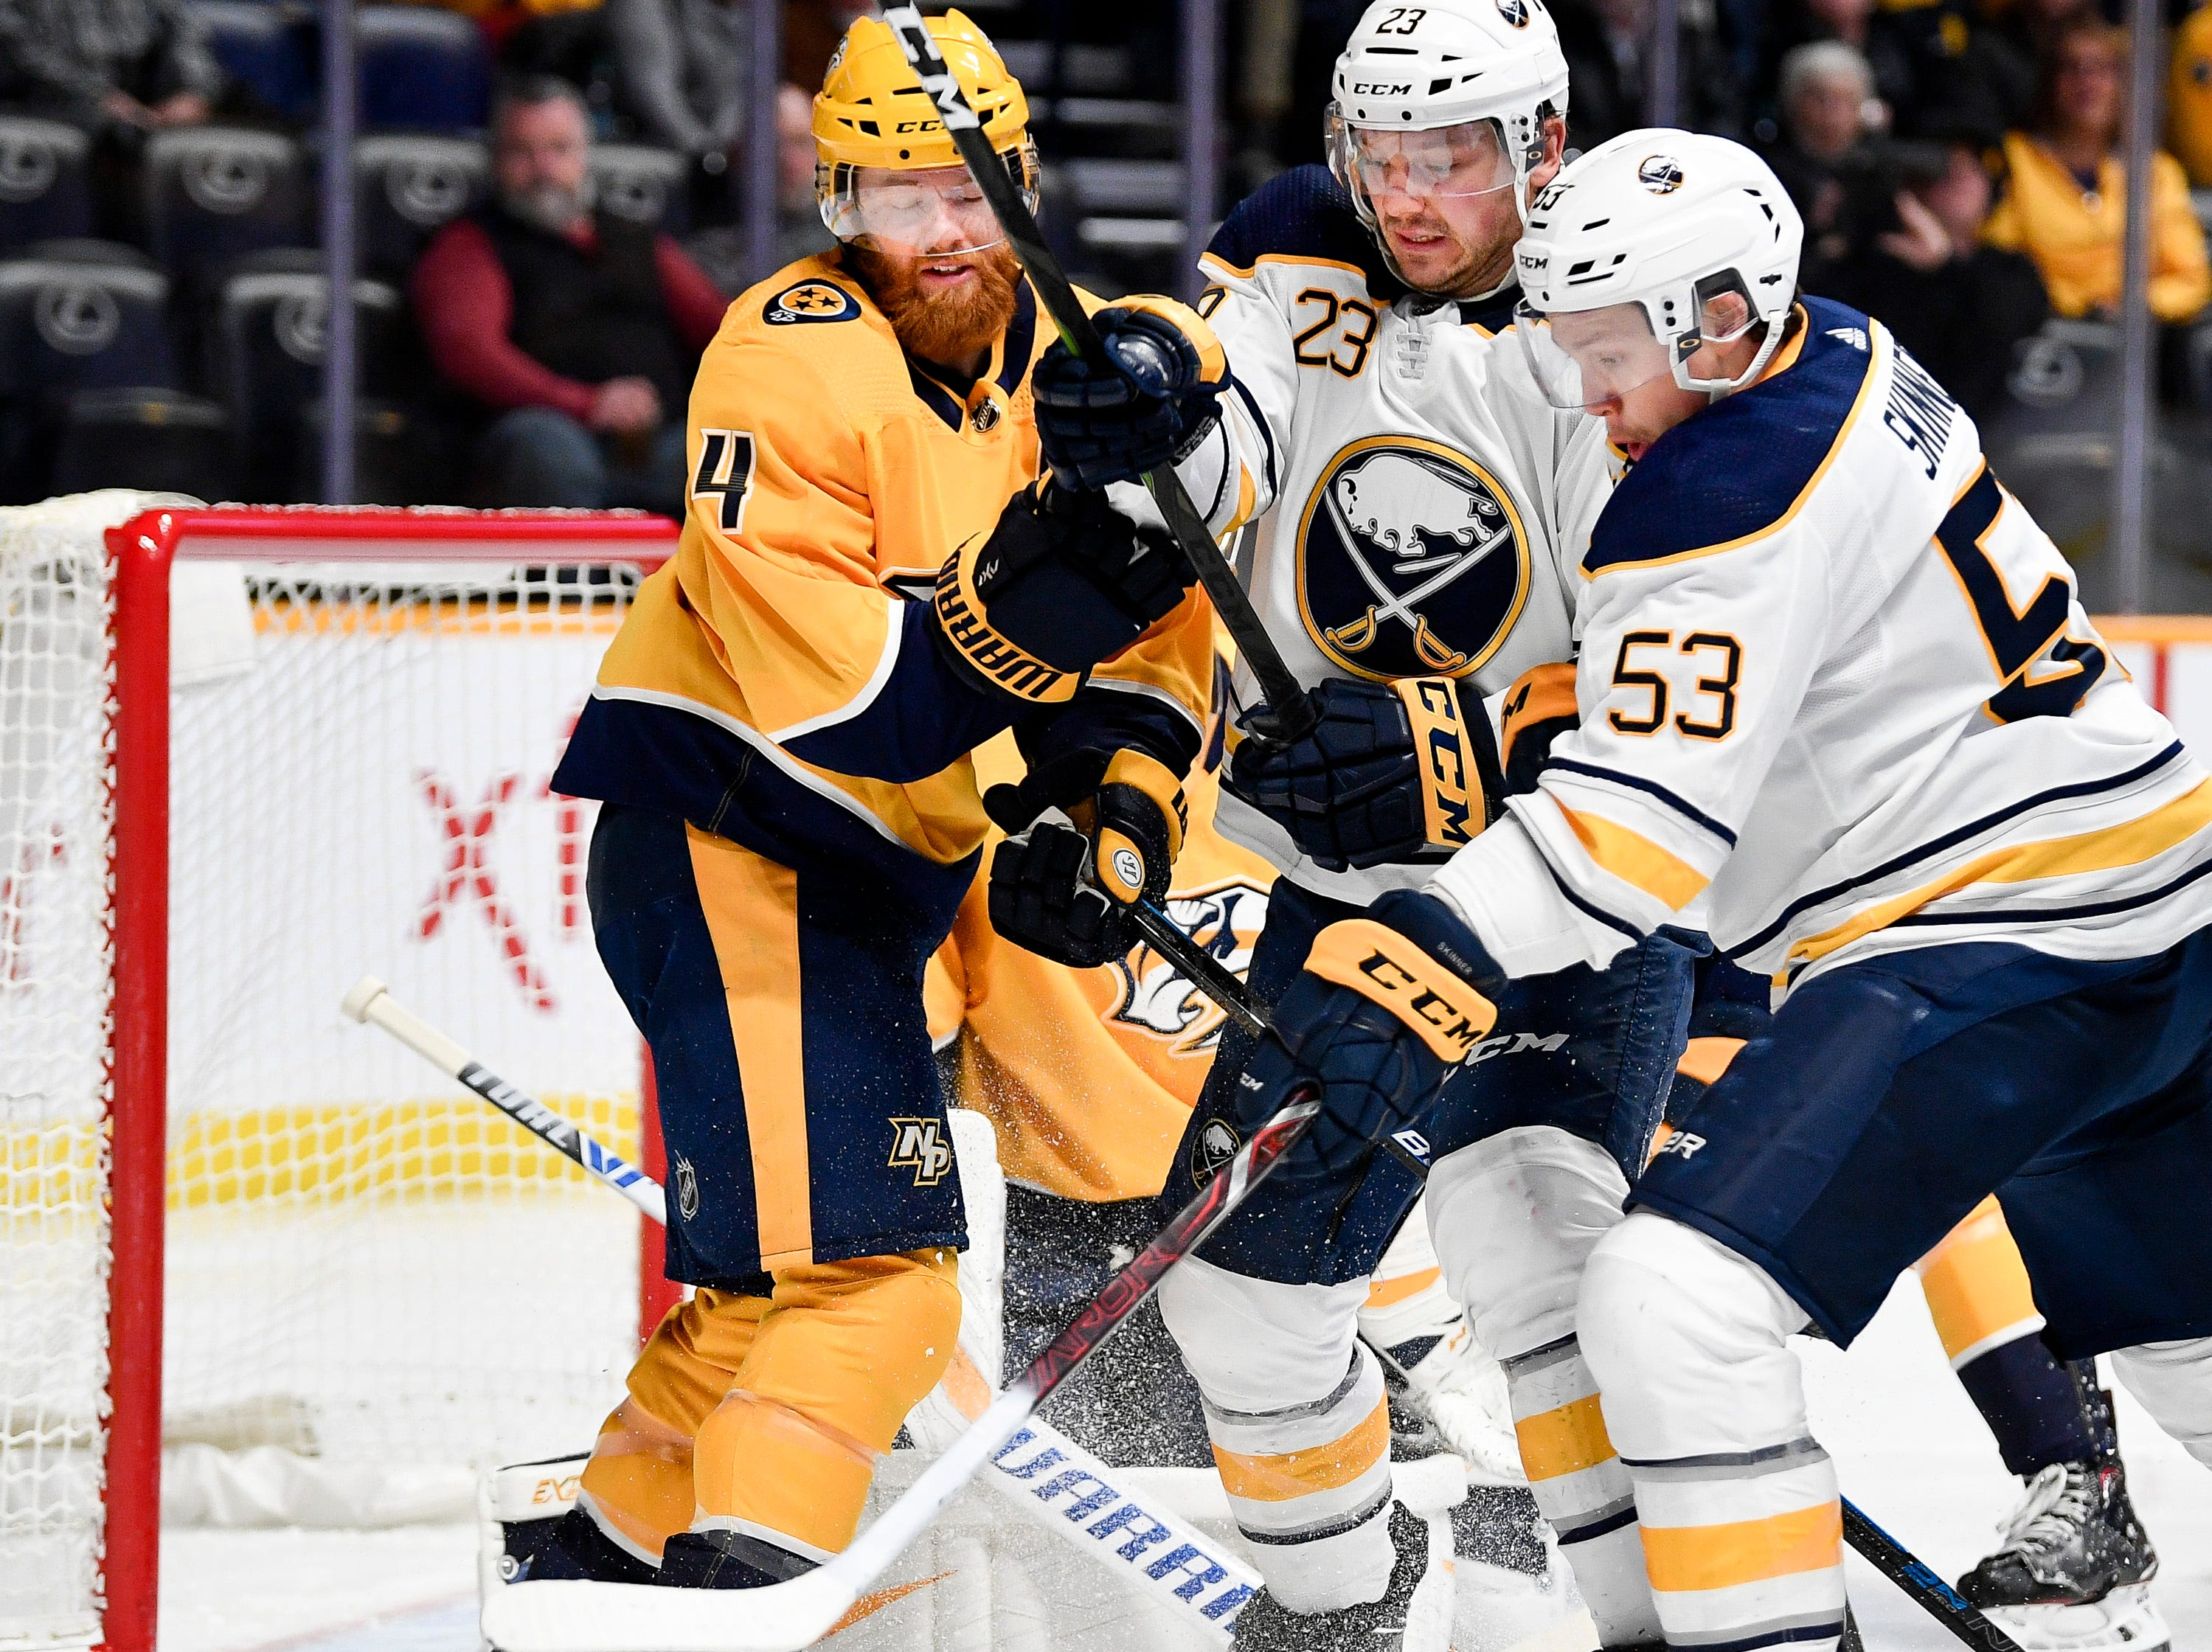 Nashville Predators defenseman Ryan Ellis (4) defends against Buffalo Sabres center Sam Reinhart (23) and left wing Jeff Skinner (53) during the second period at Bridgestone Arena in Nashville, Tenn., Monday, Dec. 3, 2018.